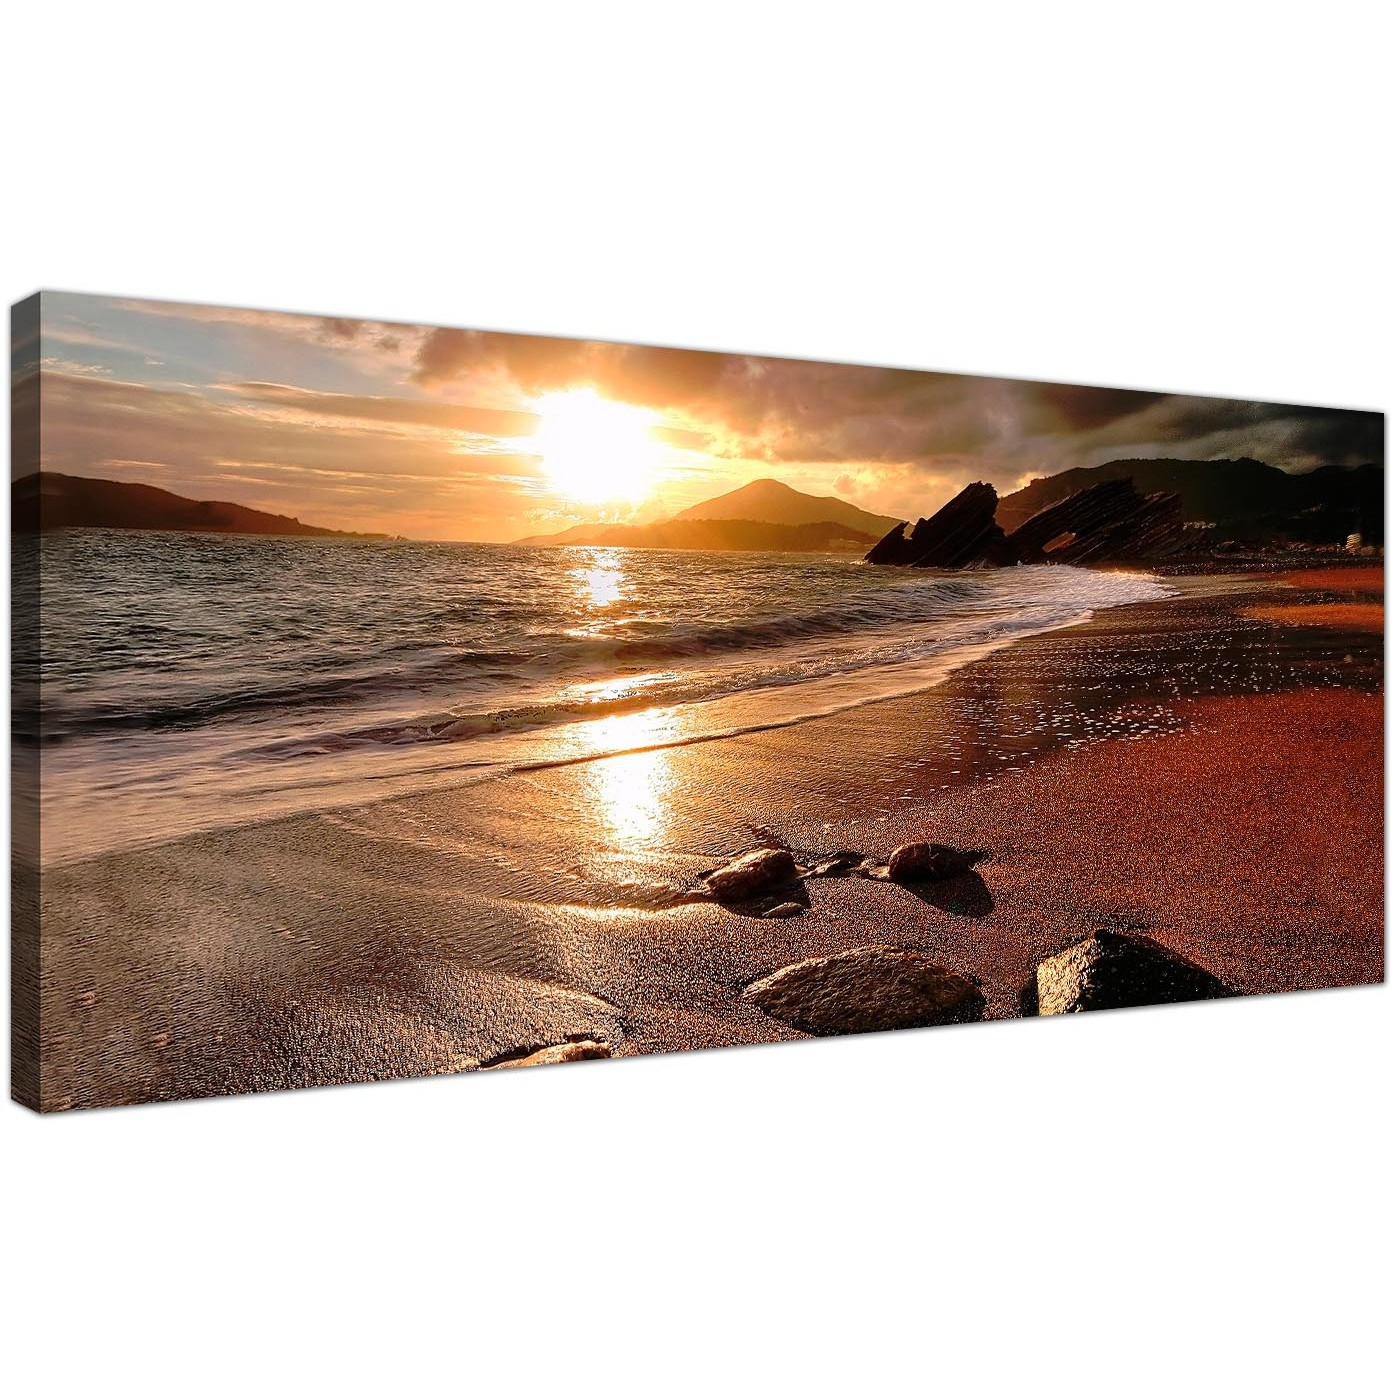 Wide Canvas Prints Of A Beach Sunset For Your Living Room Inside Most Up To Date Panoramic Canvas Wall Art (View 14 of 15)